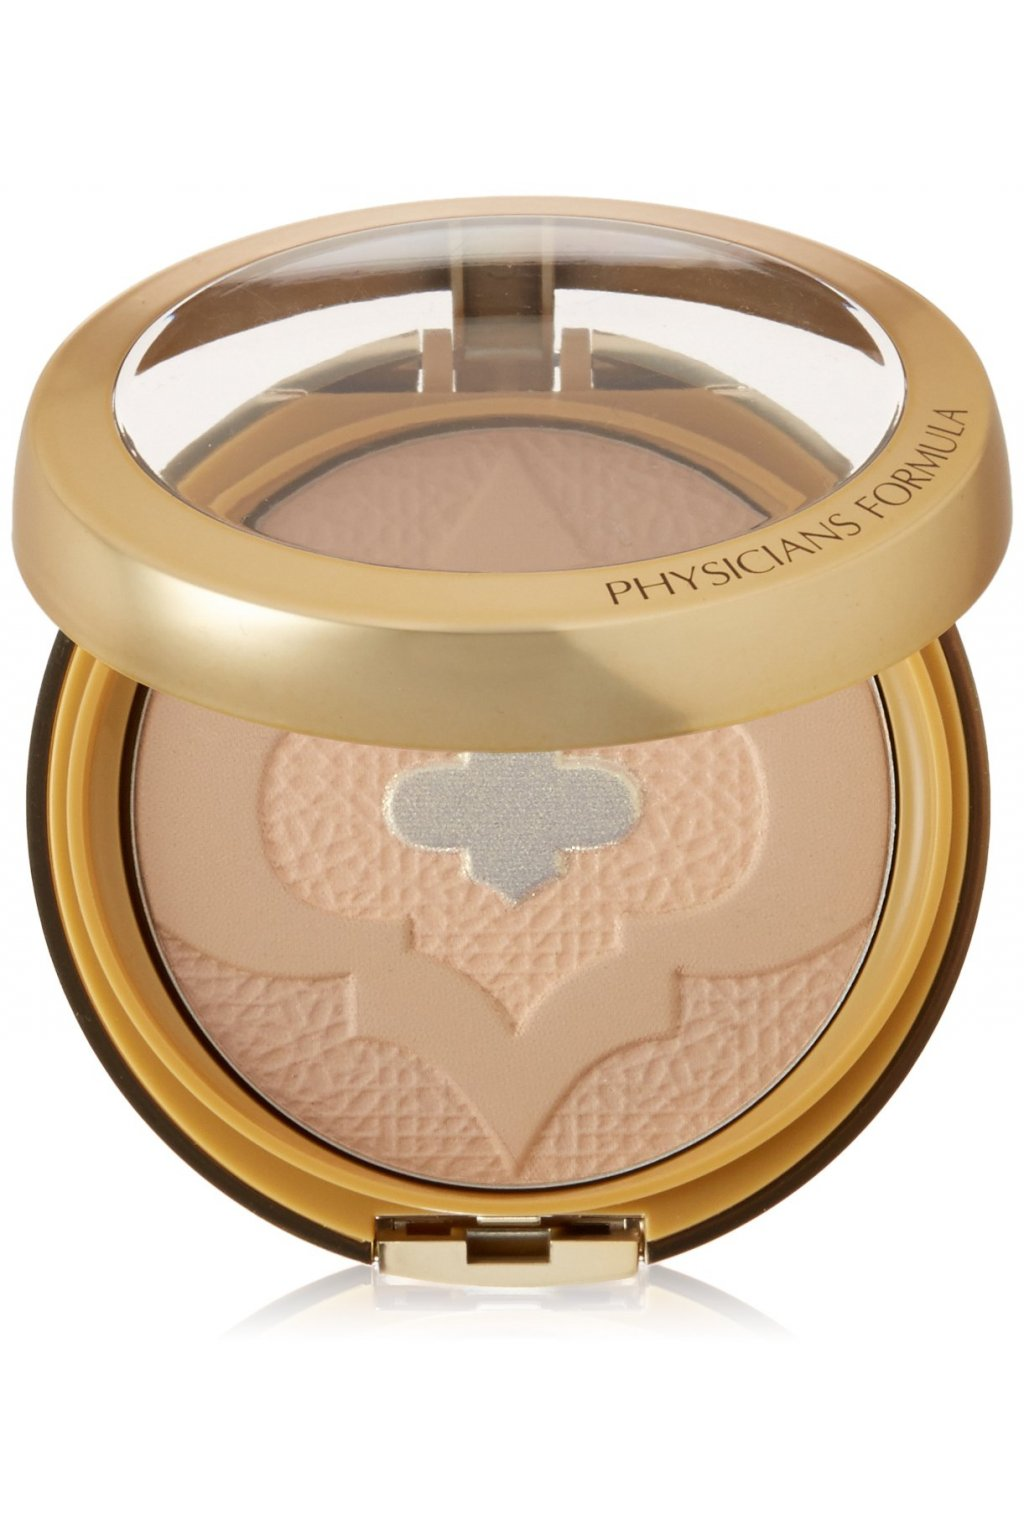 physicians formula argan wear nourishing argan oil bronzujici pudr